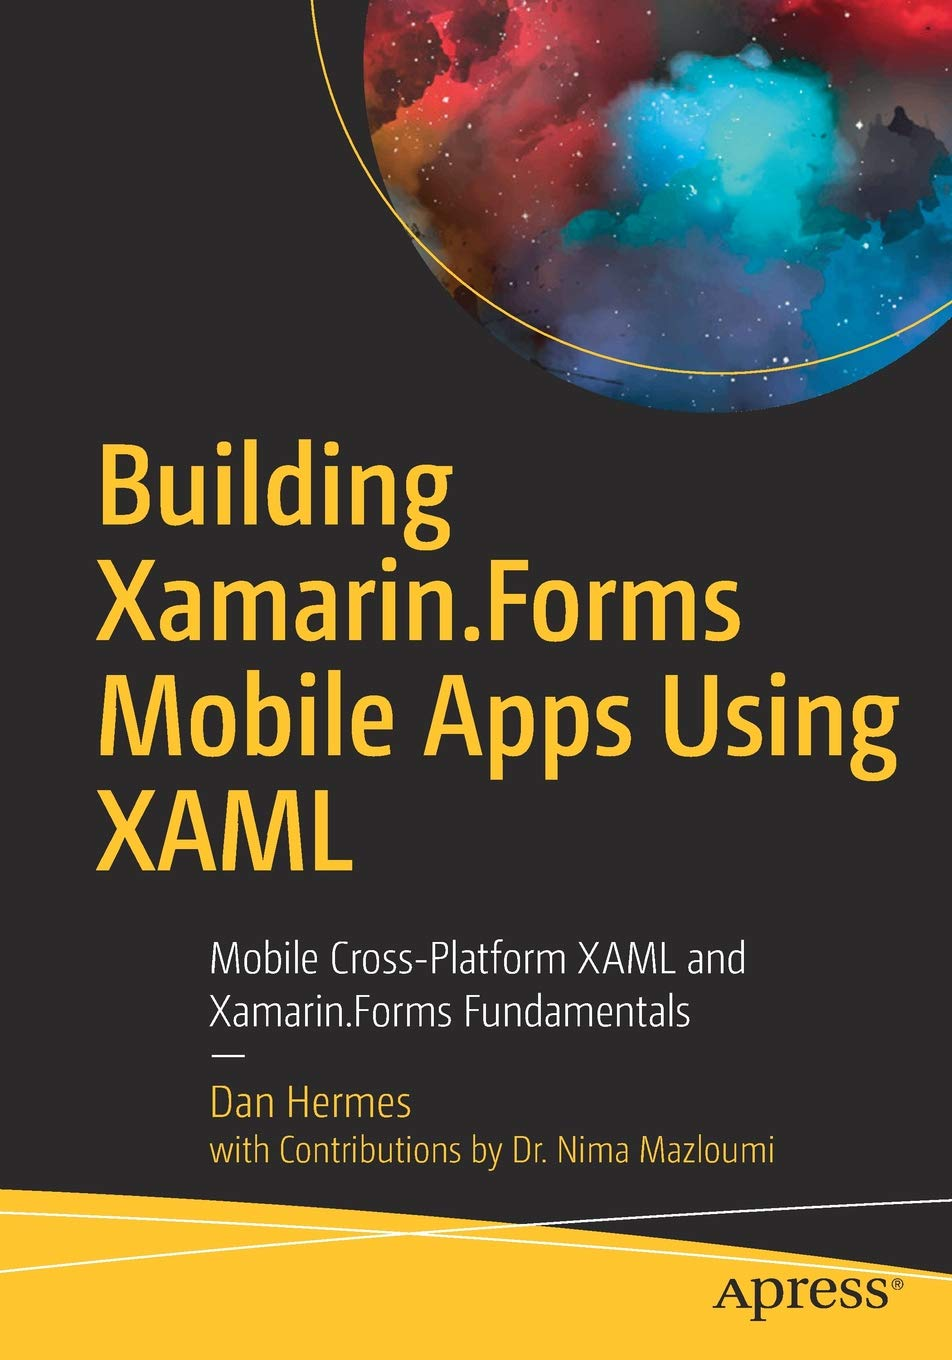 Building Xamarin Forms Mobile Apps Using XAML: Mobile Cross